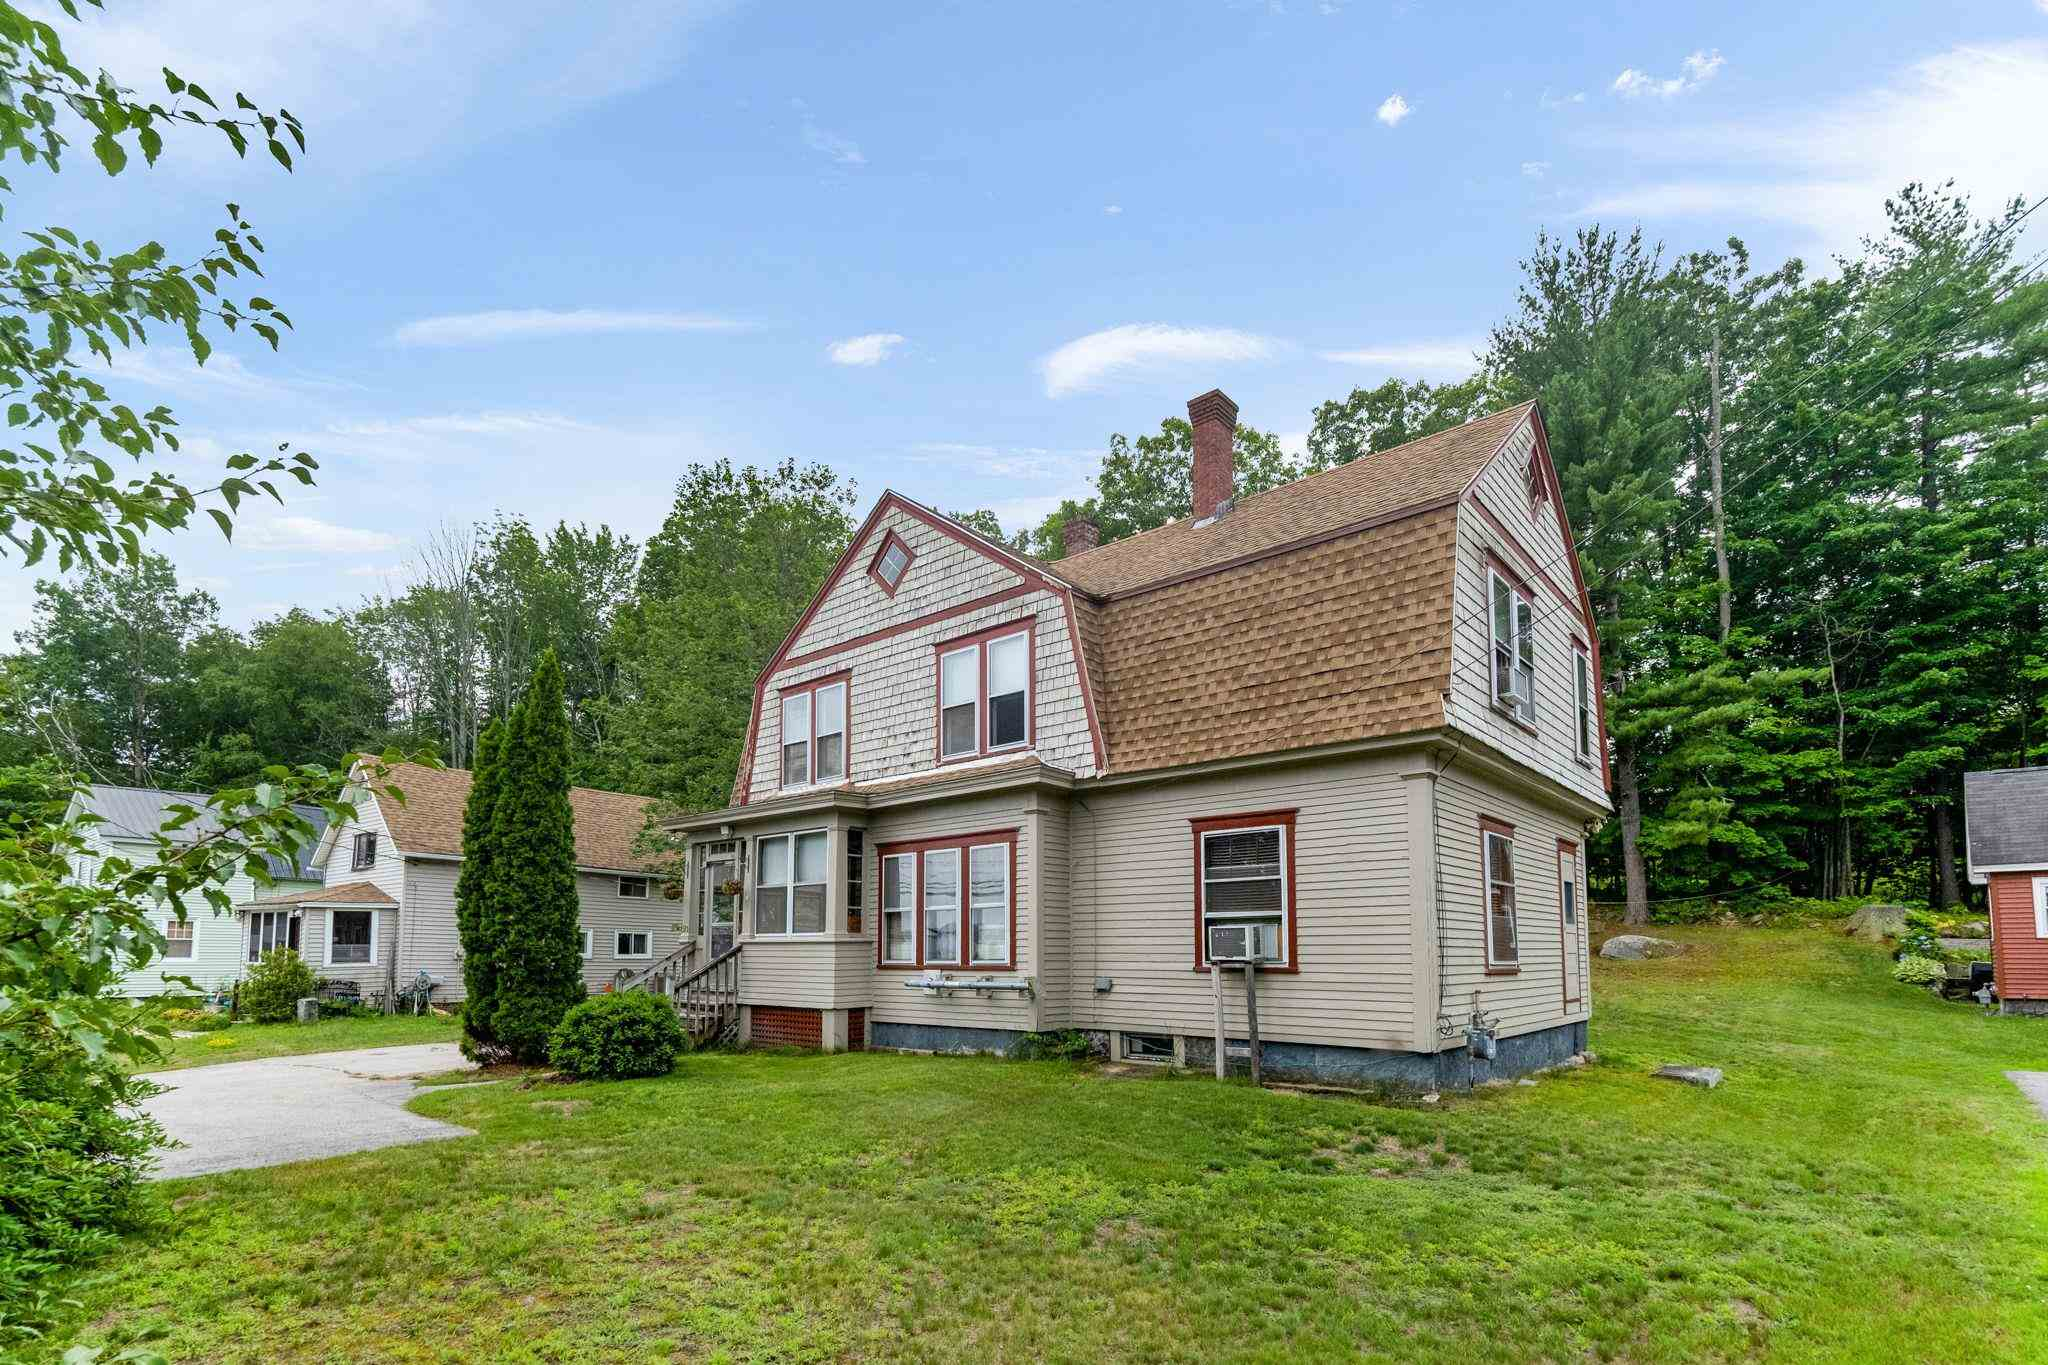 Photo of 325 N State Street Concord NH 03301